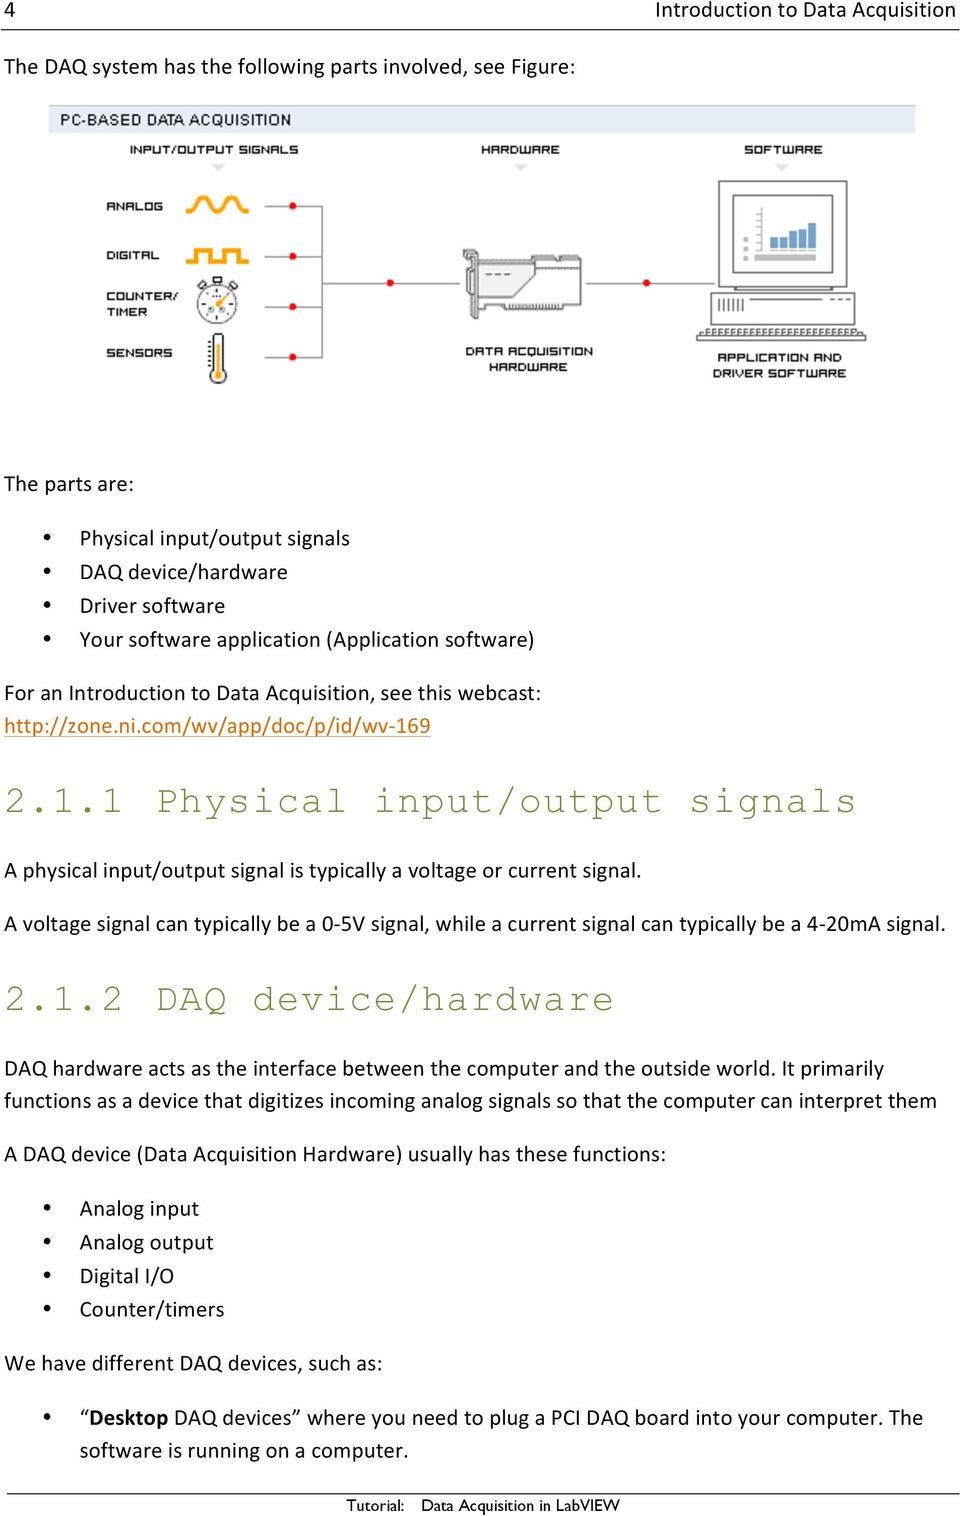 Data Acquisition In Labview Pdf Hardware Circuit Of Pcbased Logger Is Designed Around Analog 9 211 Physical Input Output Signals A Signal 5 Introduction To